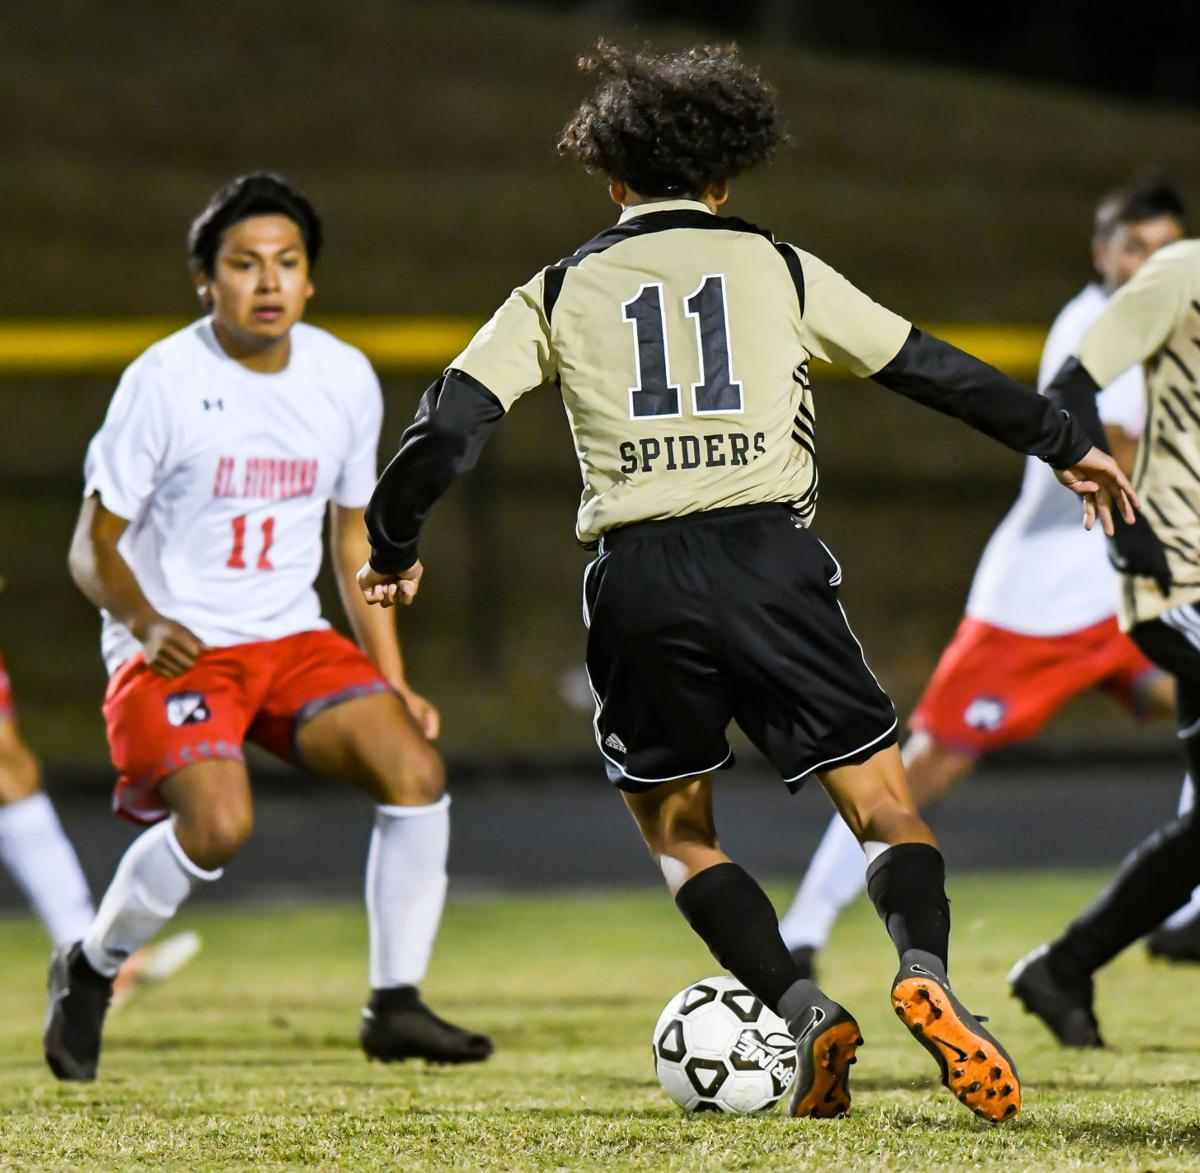 Wednesday night High School Soccer Playoff action